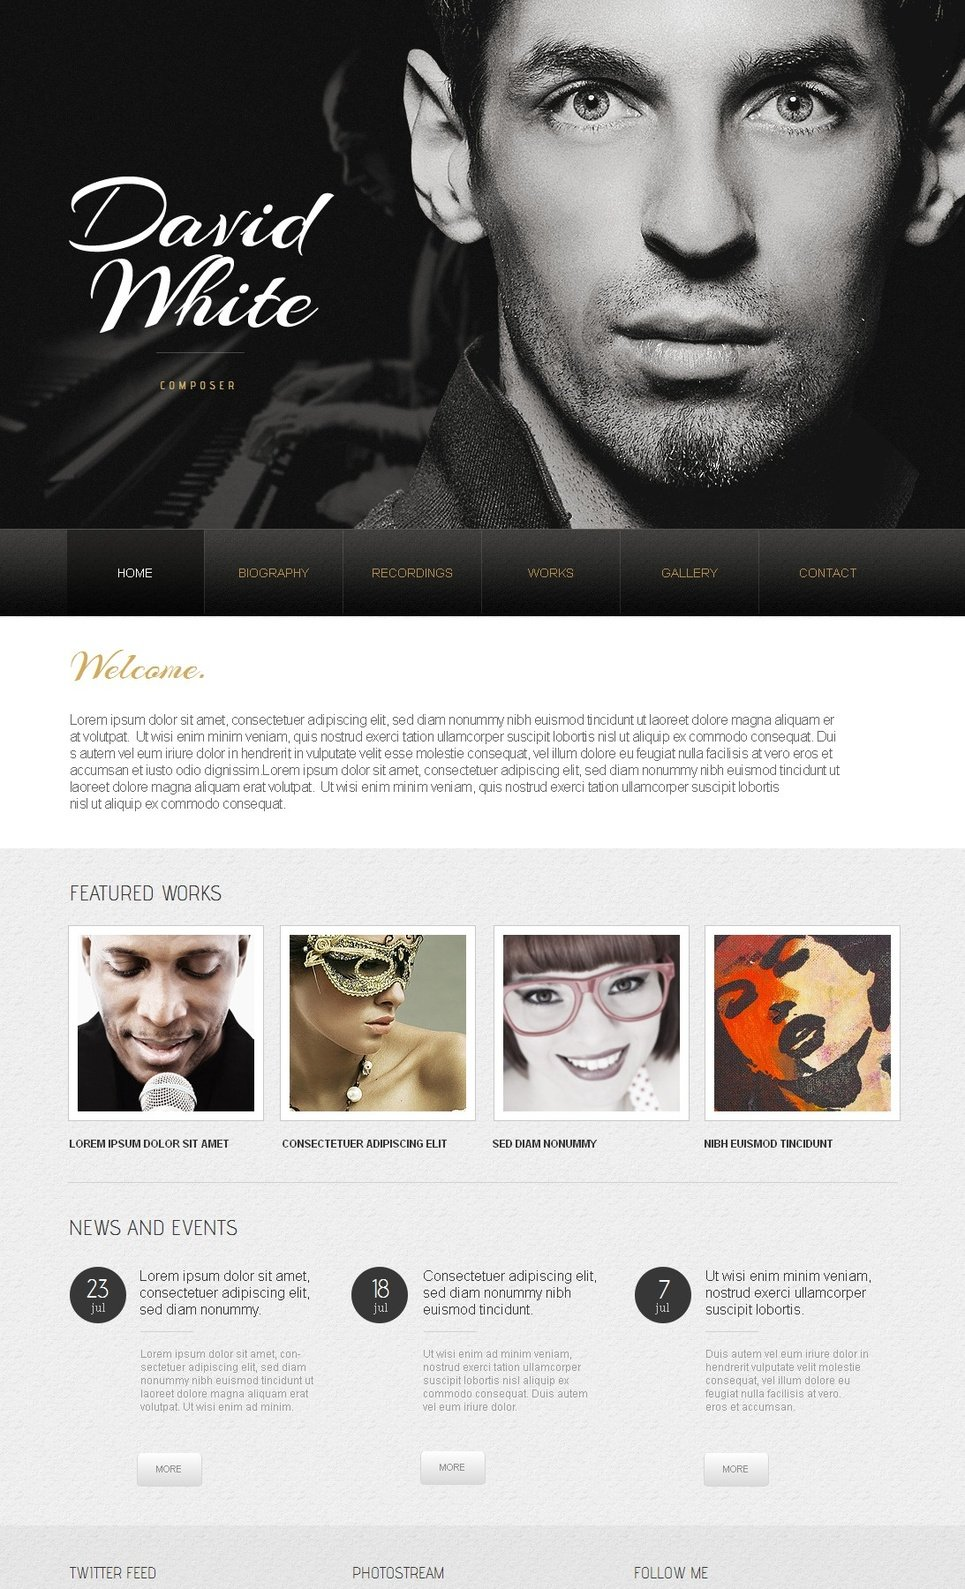 Template for Personal Website in Black and White Style - image